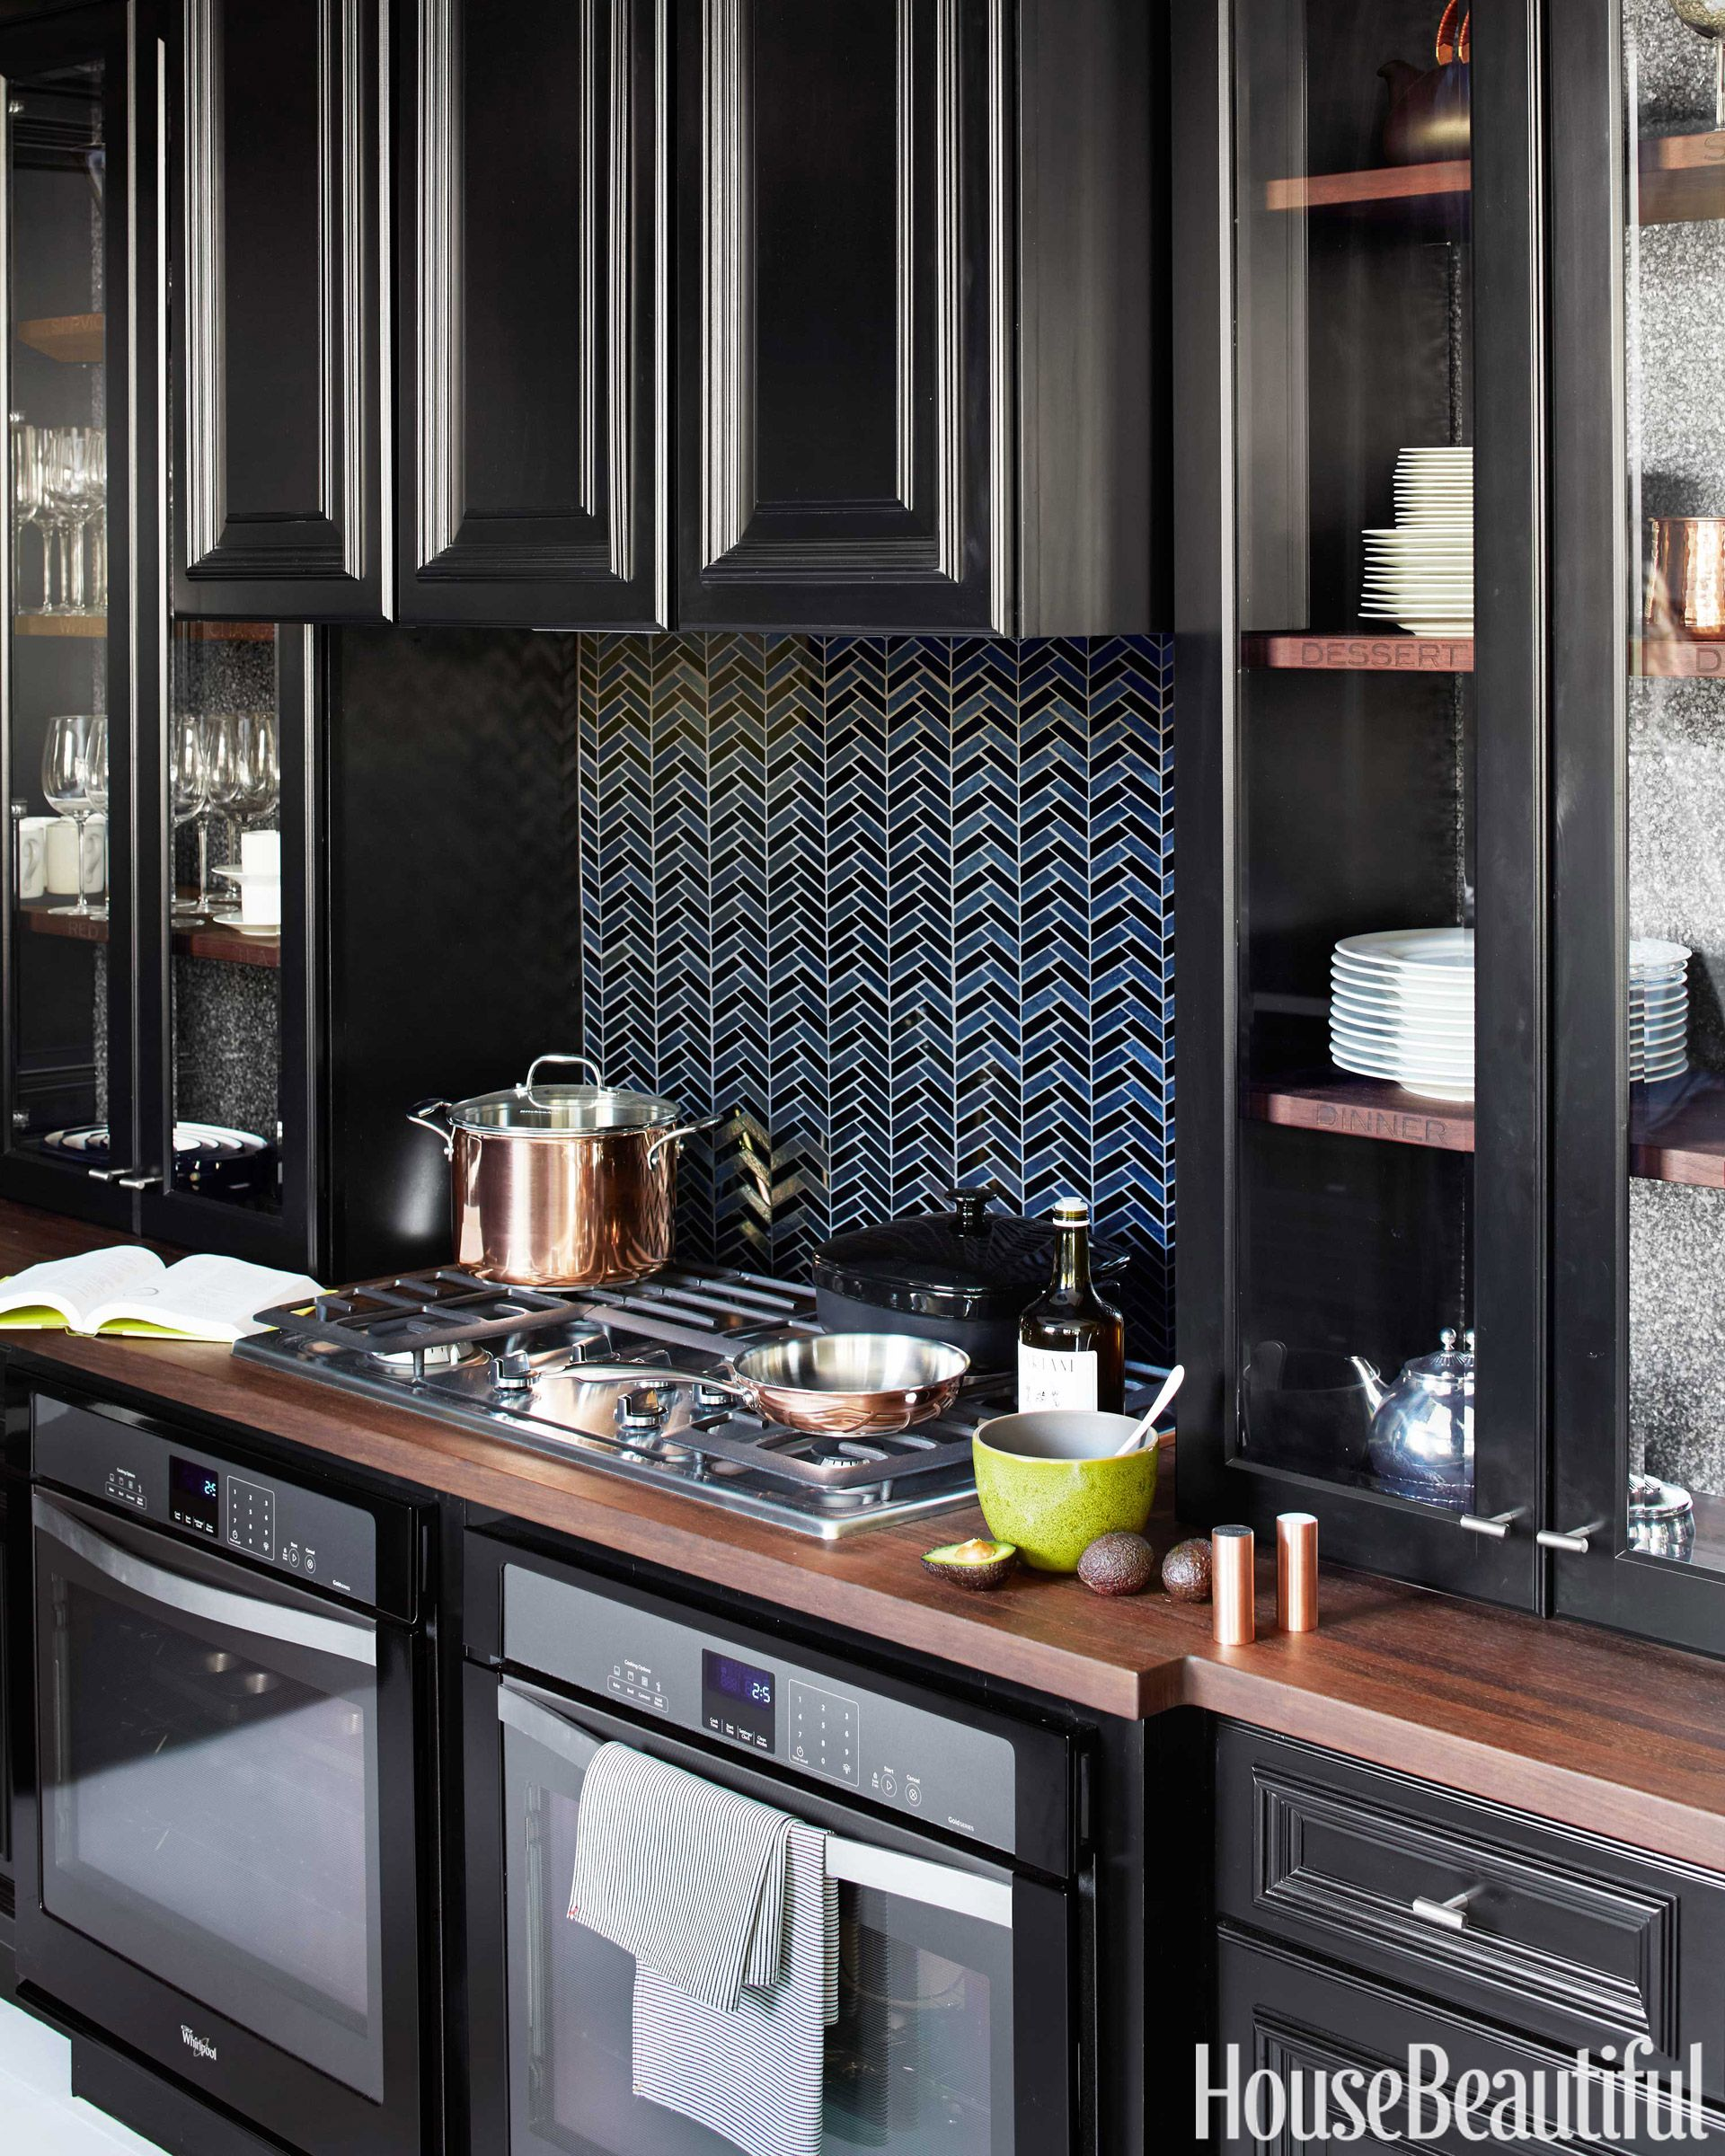 10 black kitchen cabinet ideas black cabinetry and cupboards rh housebeautiful com black cabinets kitchen reviews black cabinet kitchen images